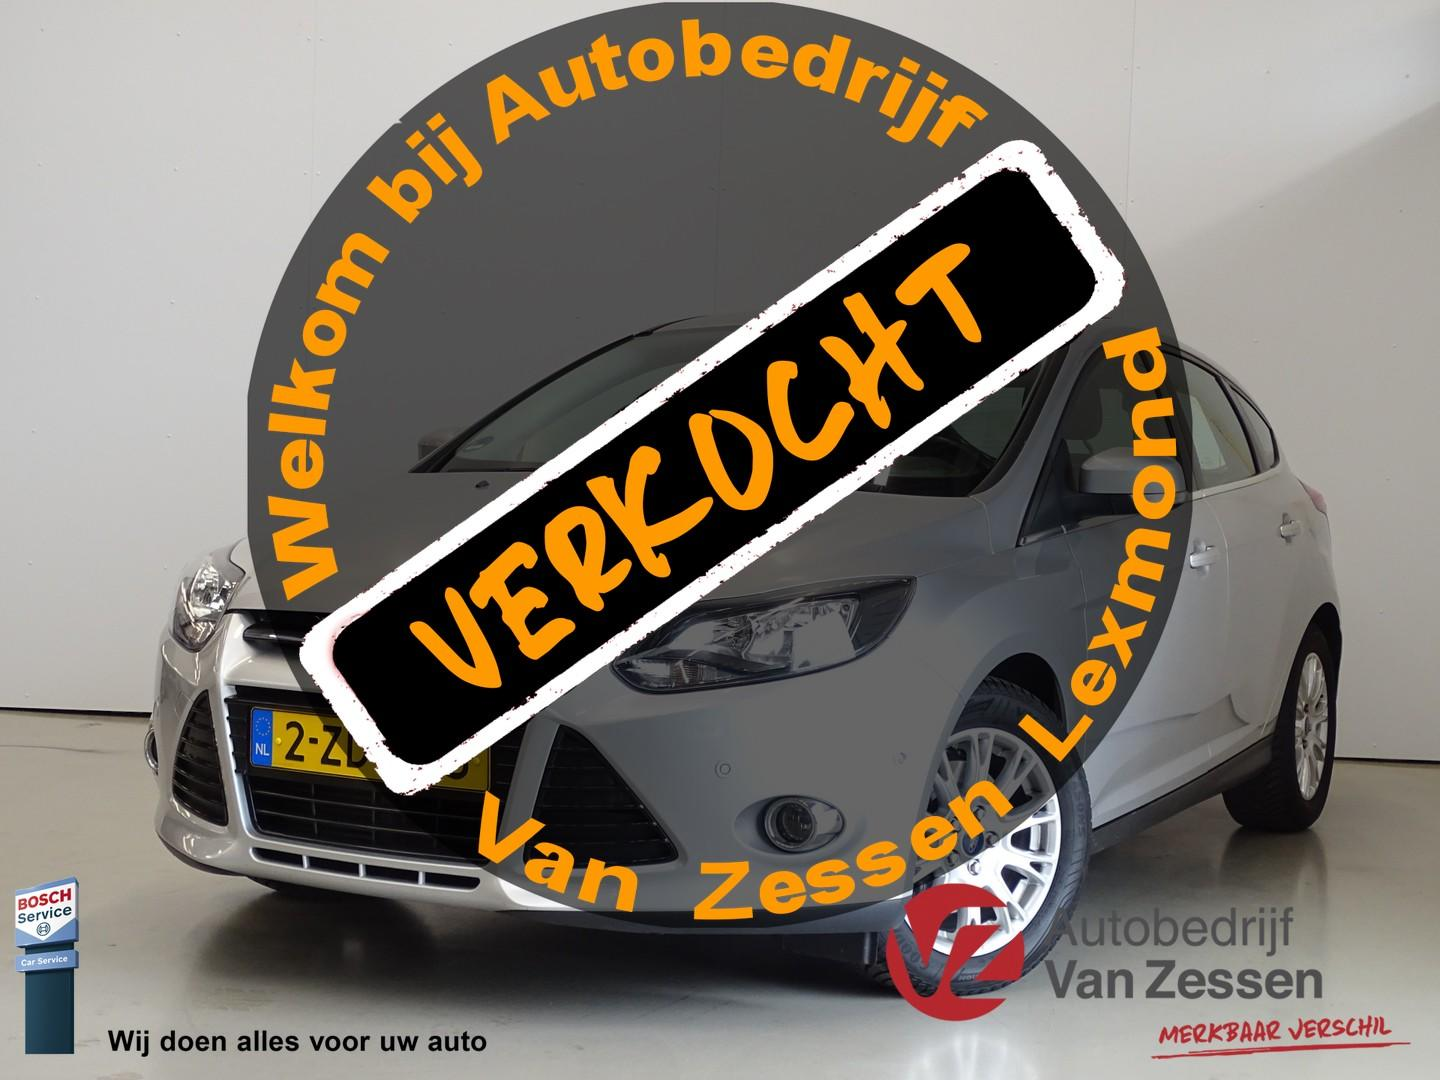 Ford Focus 1.6 ecoboost first edition